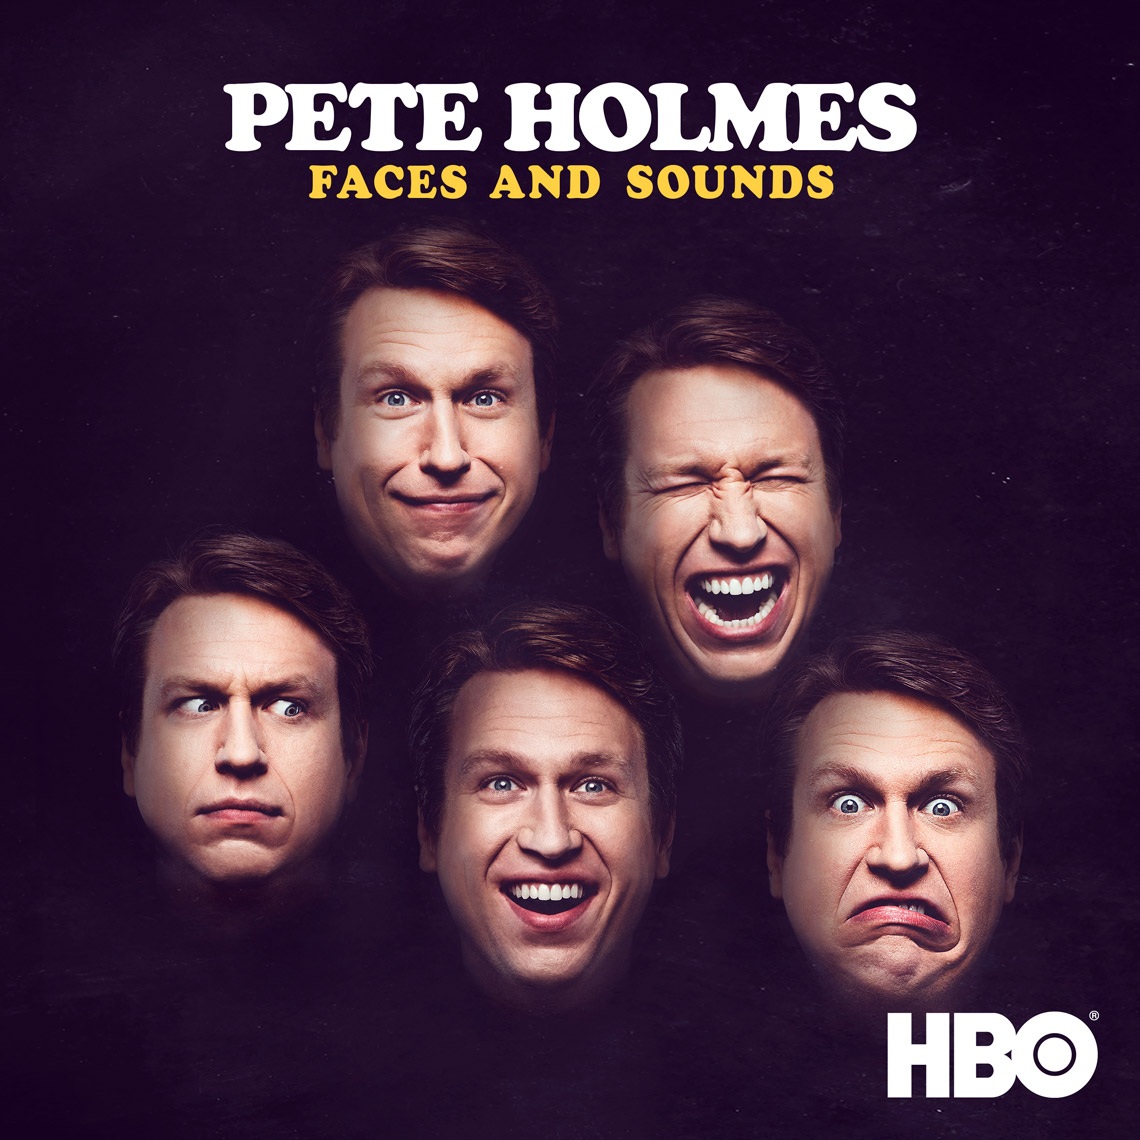 PeteHolmes_JD